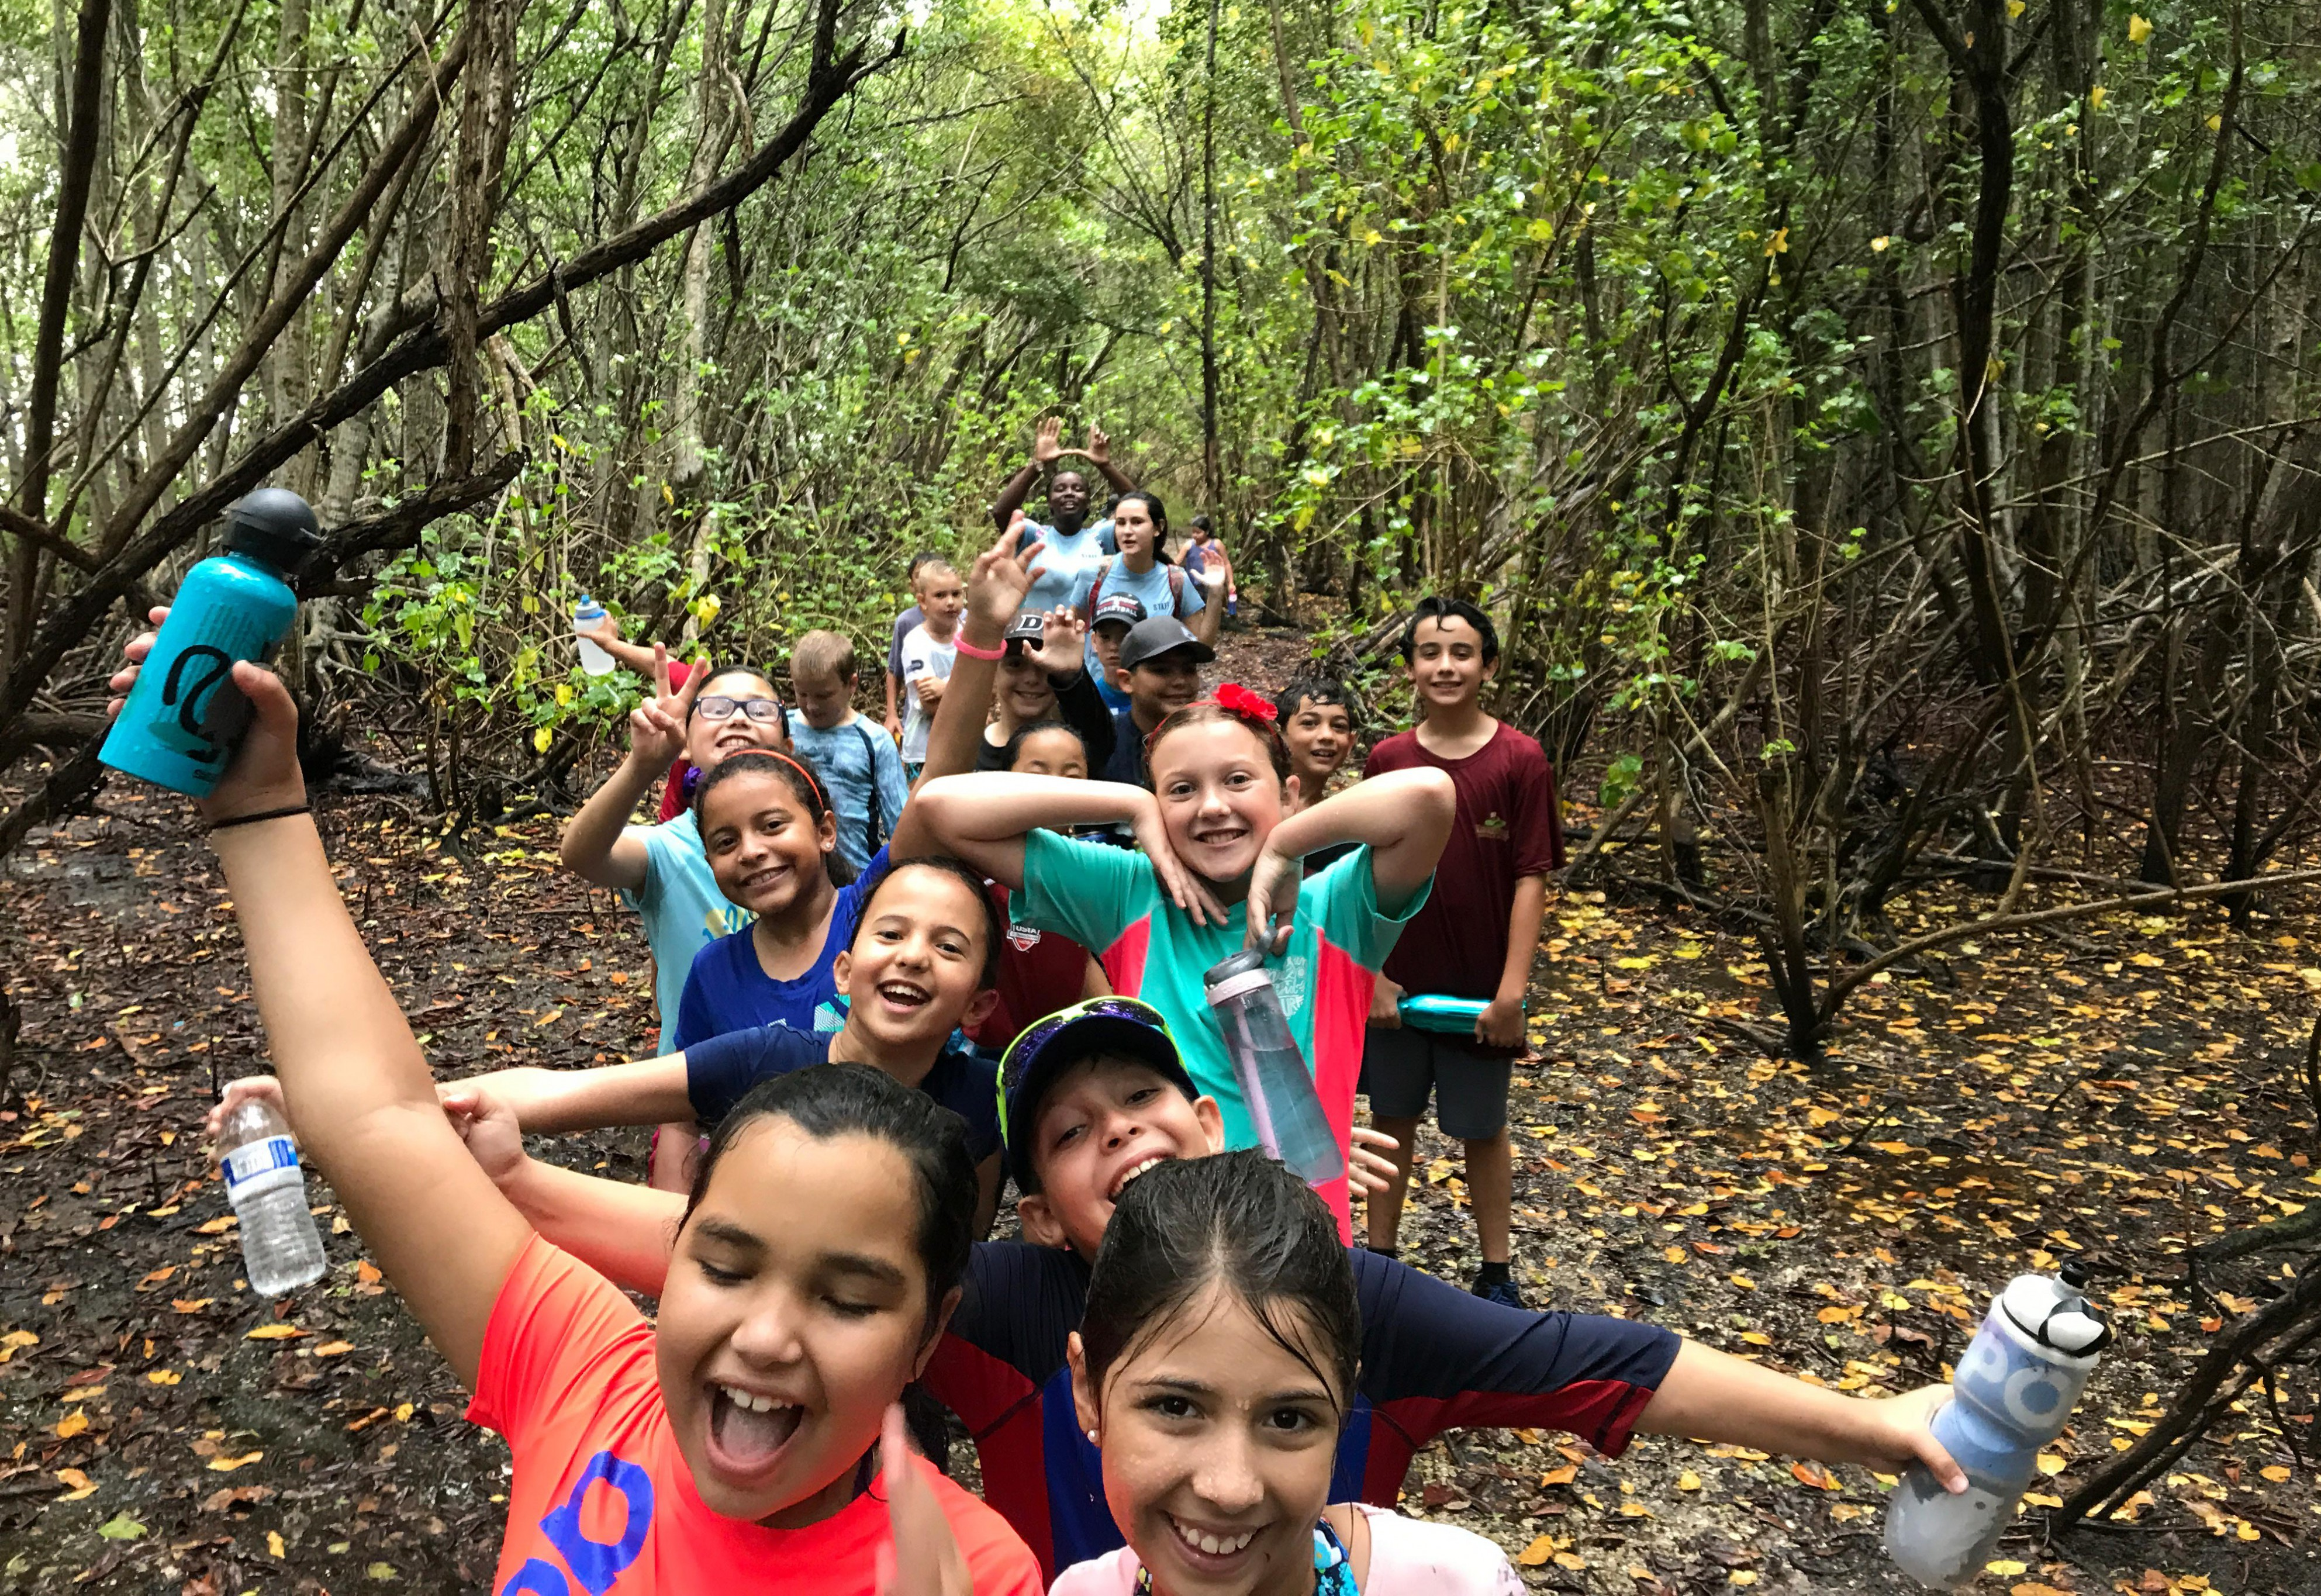 summer campers on a hike in the rain through the natural areas of the park